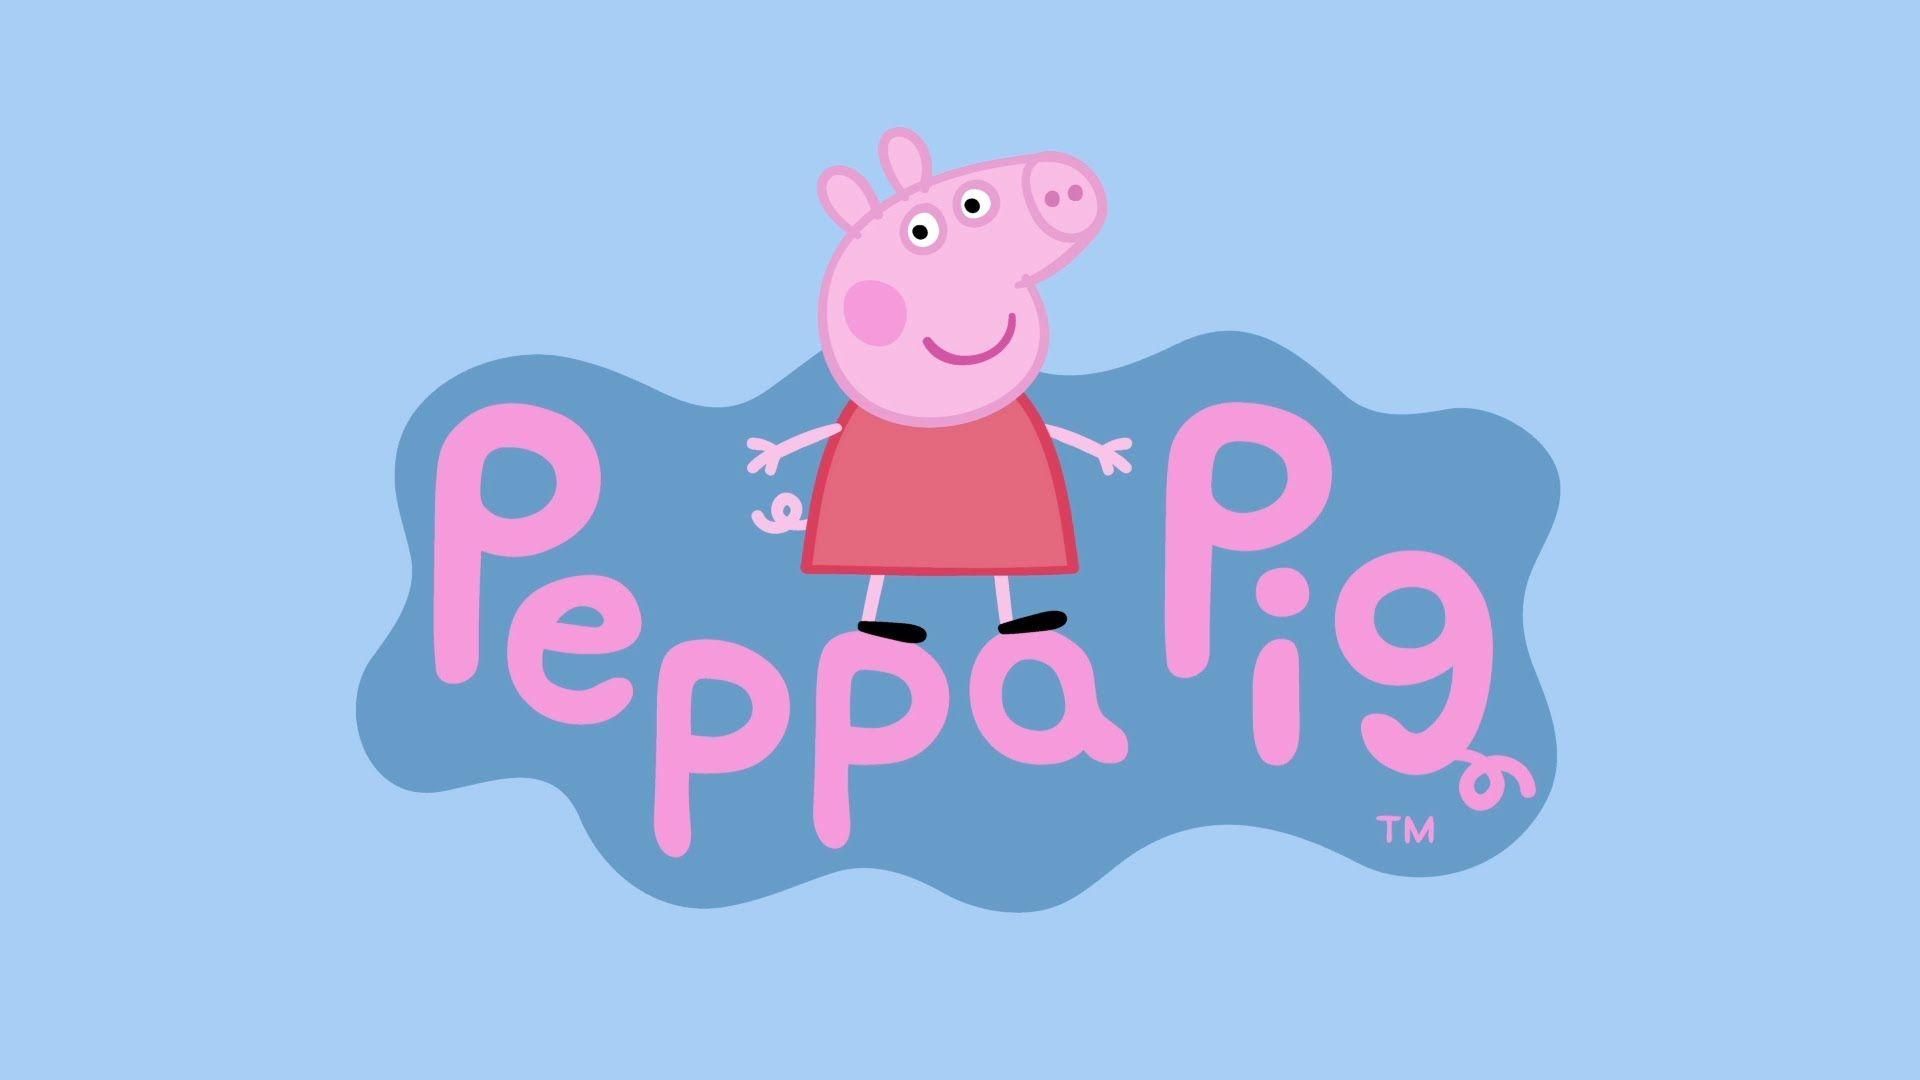 Peppa Pig wallpapers, Cartoon, HQ Peppa Pig pictures | 4K Wallpapers